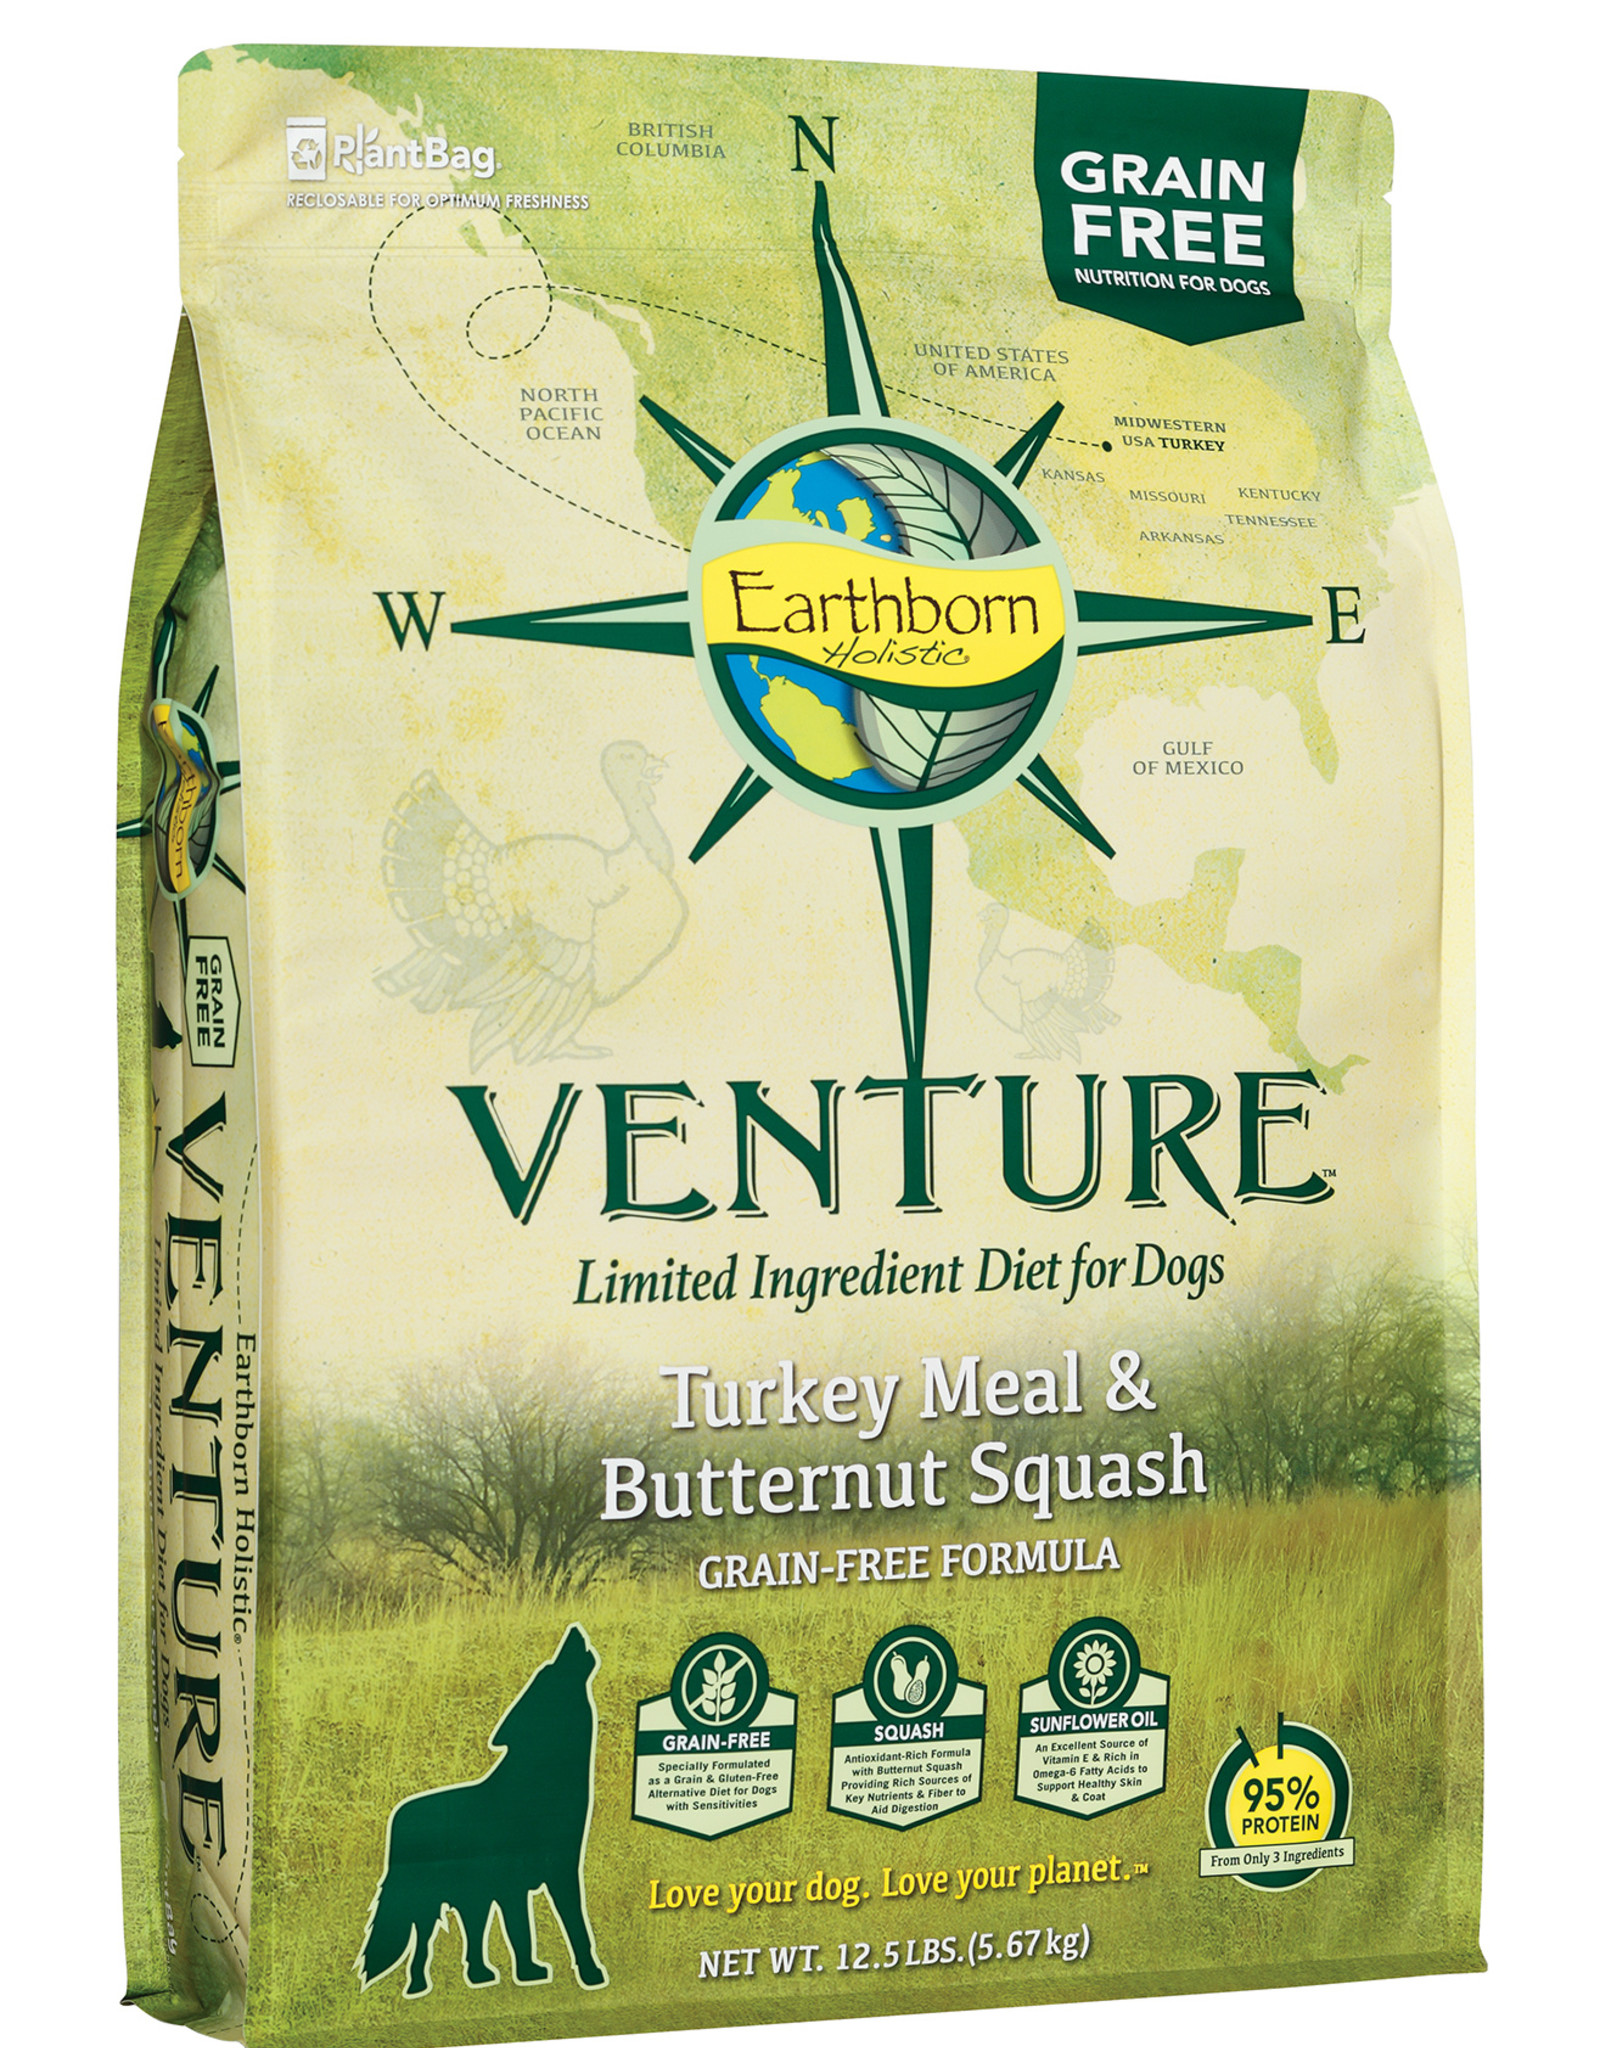 Earthborn Earthborn Venture Dog Food Turkey Meal & Butternut Squash